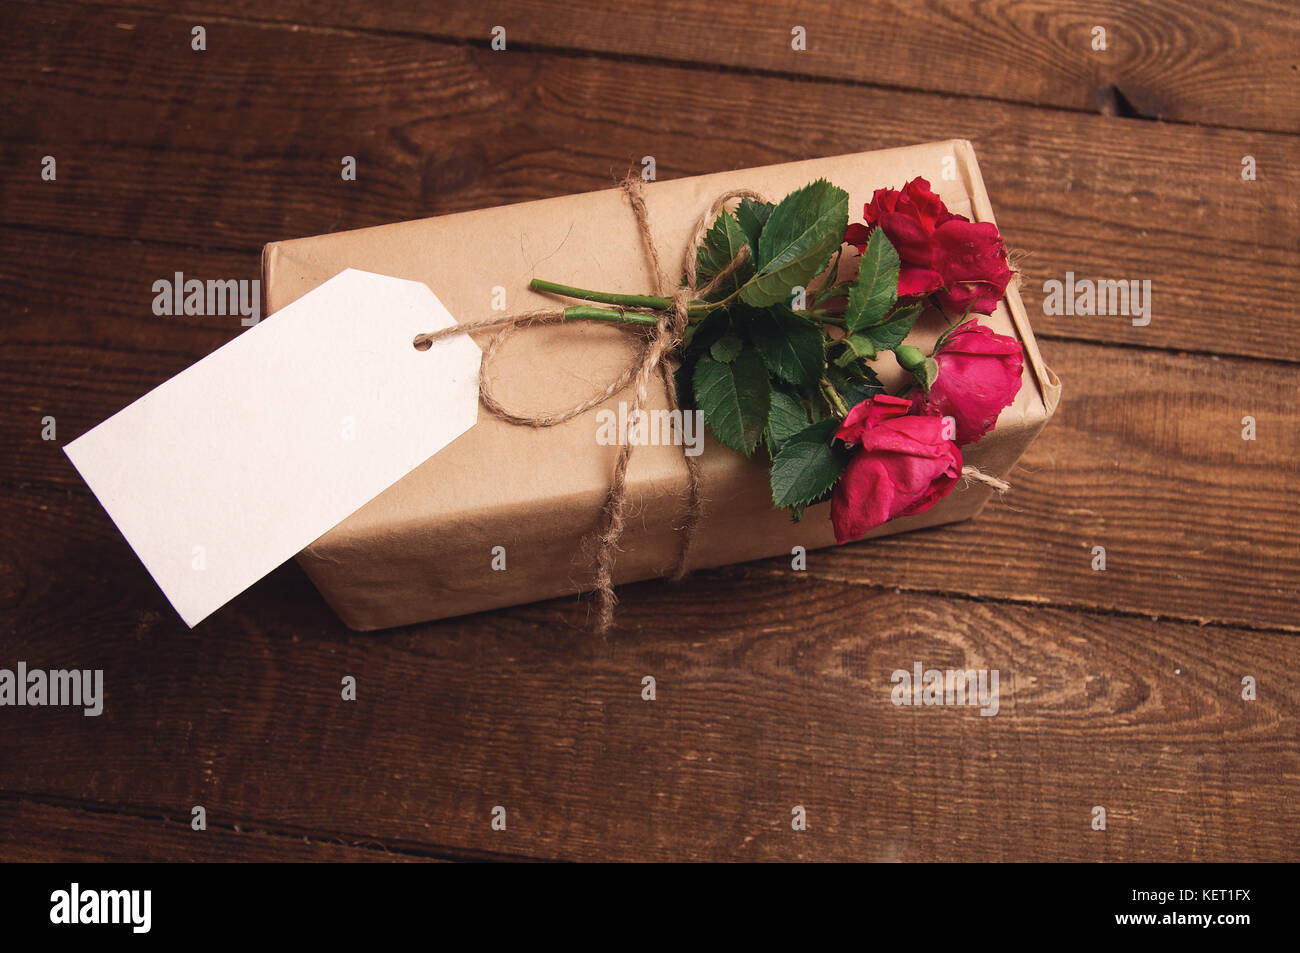 Gift Wrapped In Kraft Paper With Rose Flower On Top Stock Photo